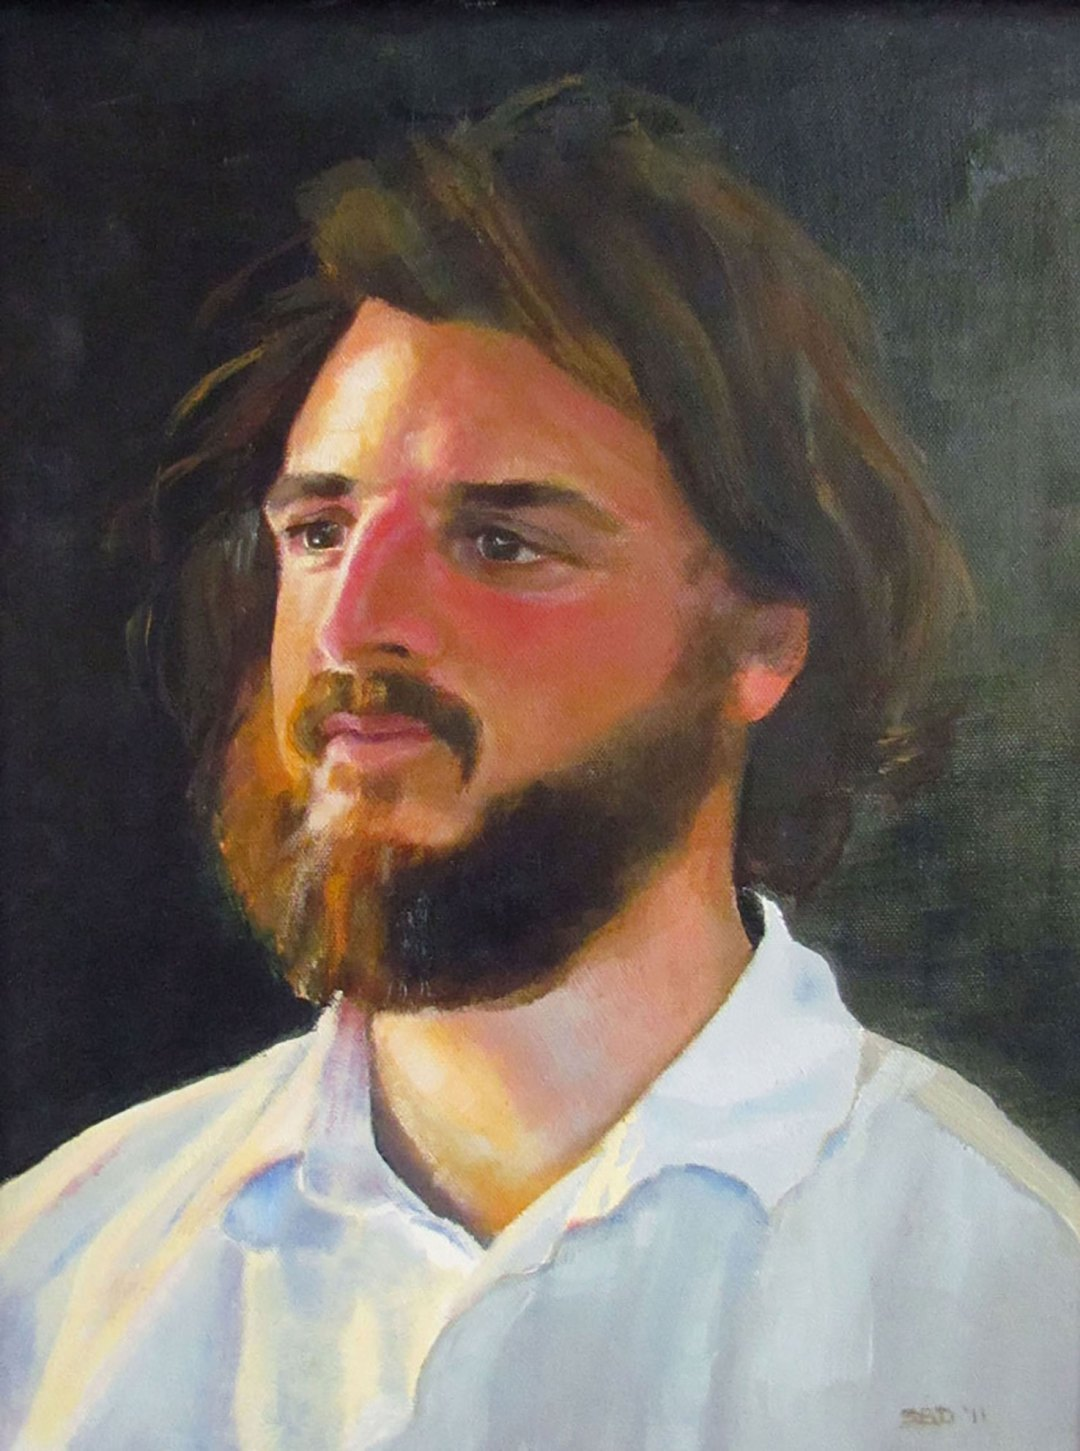 OIL PAINTING OF YOUNG MAN